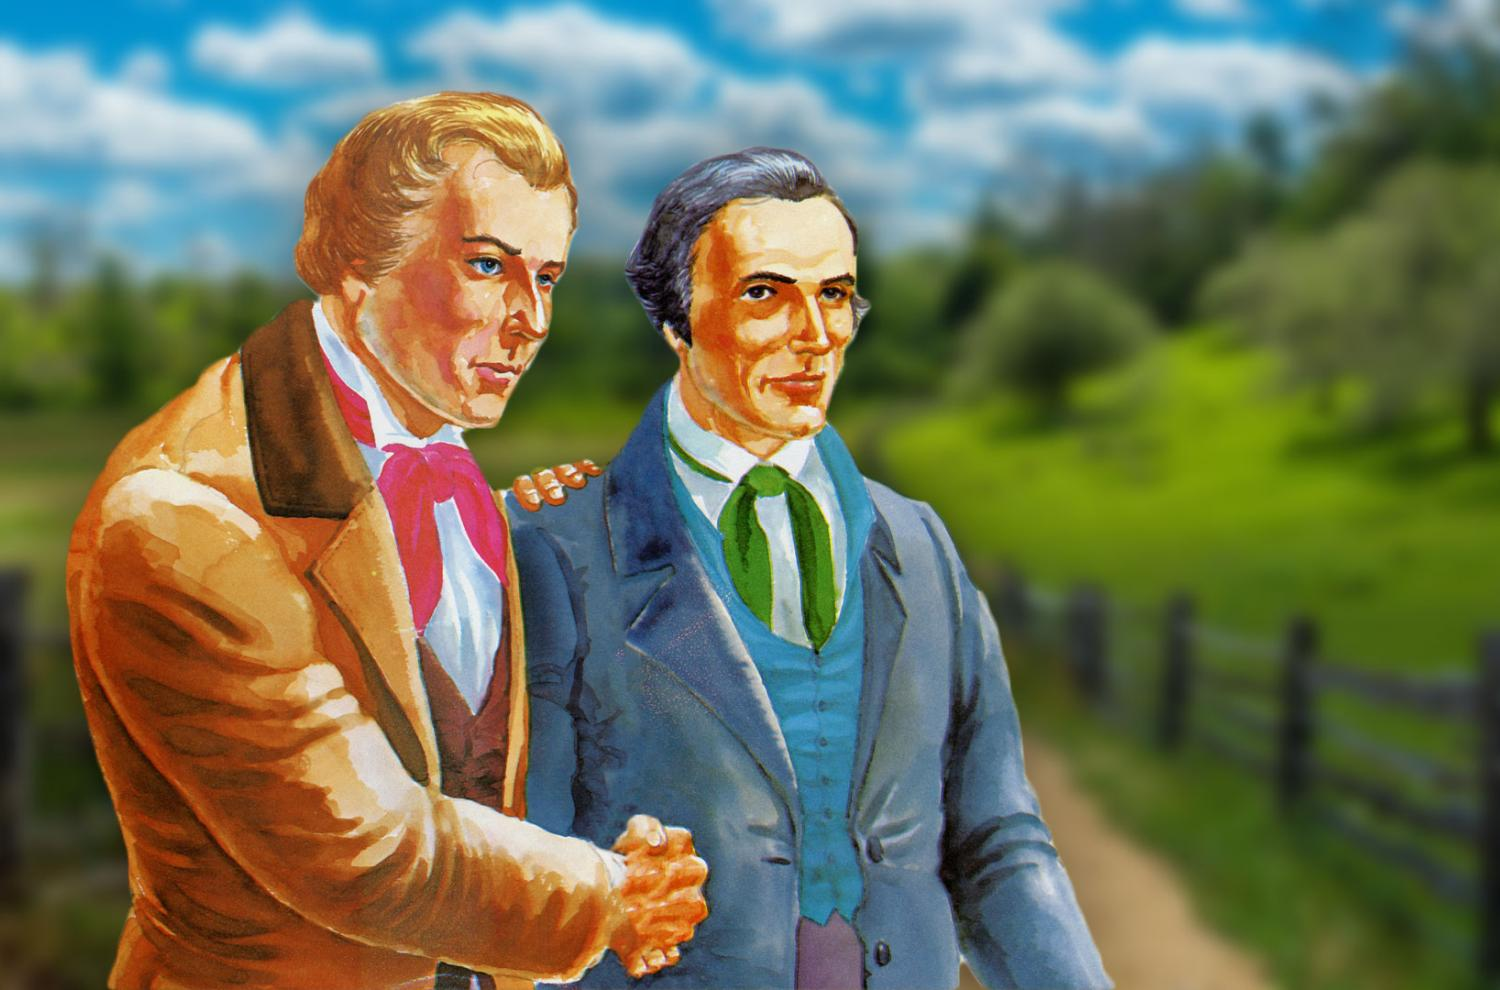 Oliver and Joseph by Vernon Murdock.